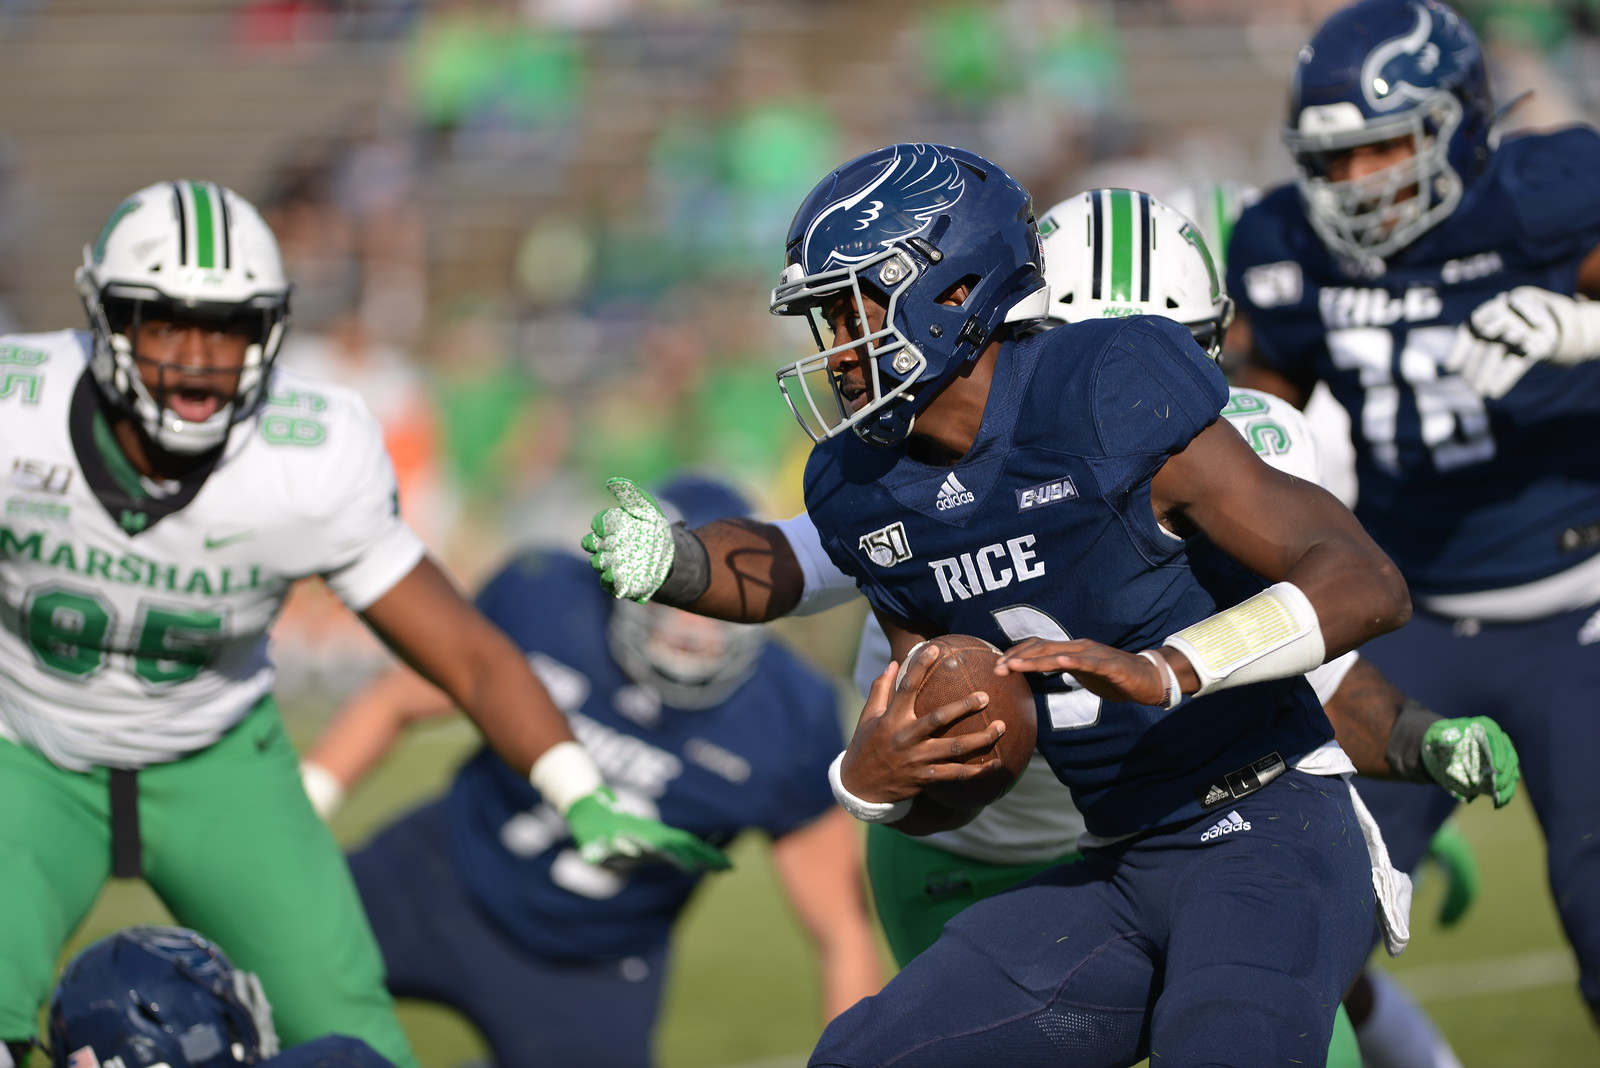 Jovoni Johnson, Rice football